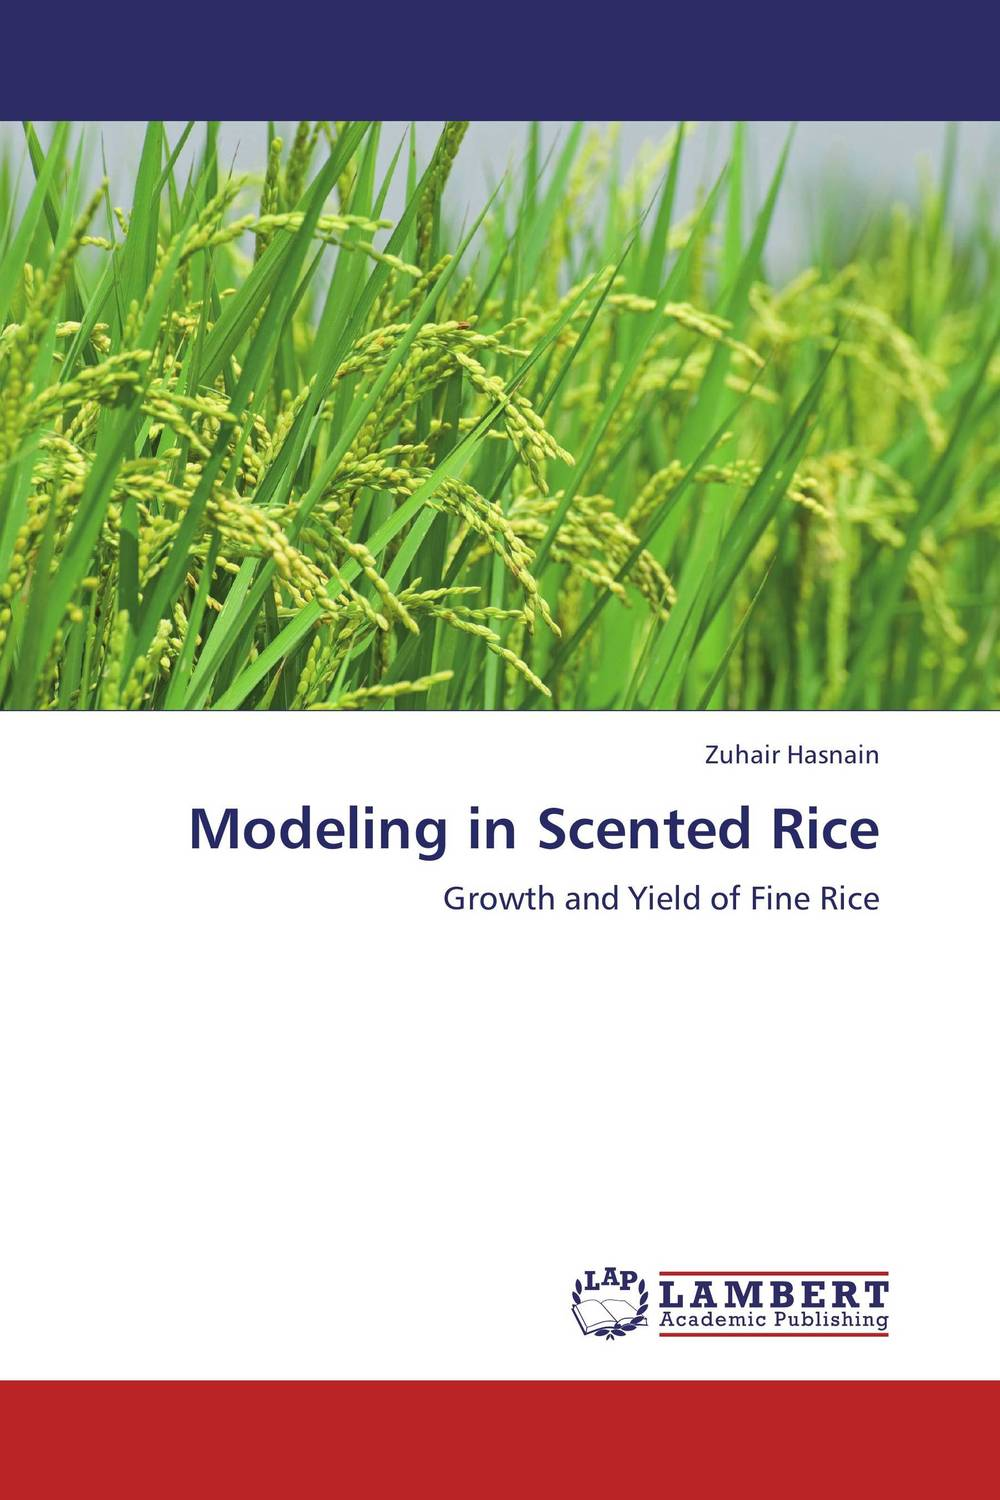 Modeling in Scented Rice natural enemy fauna in rice wheat system of india